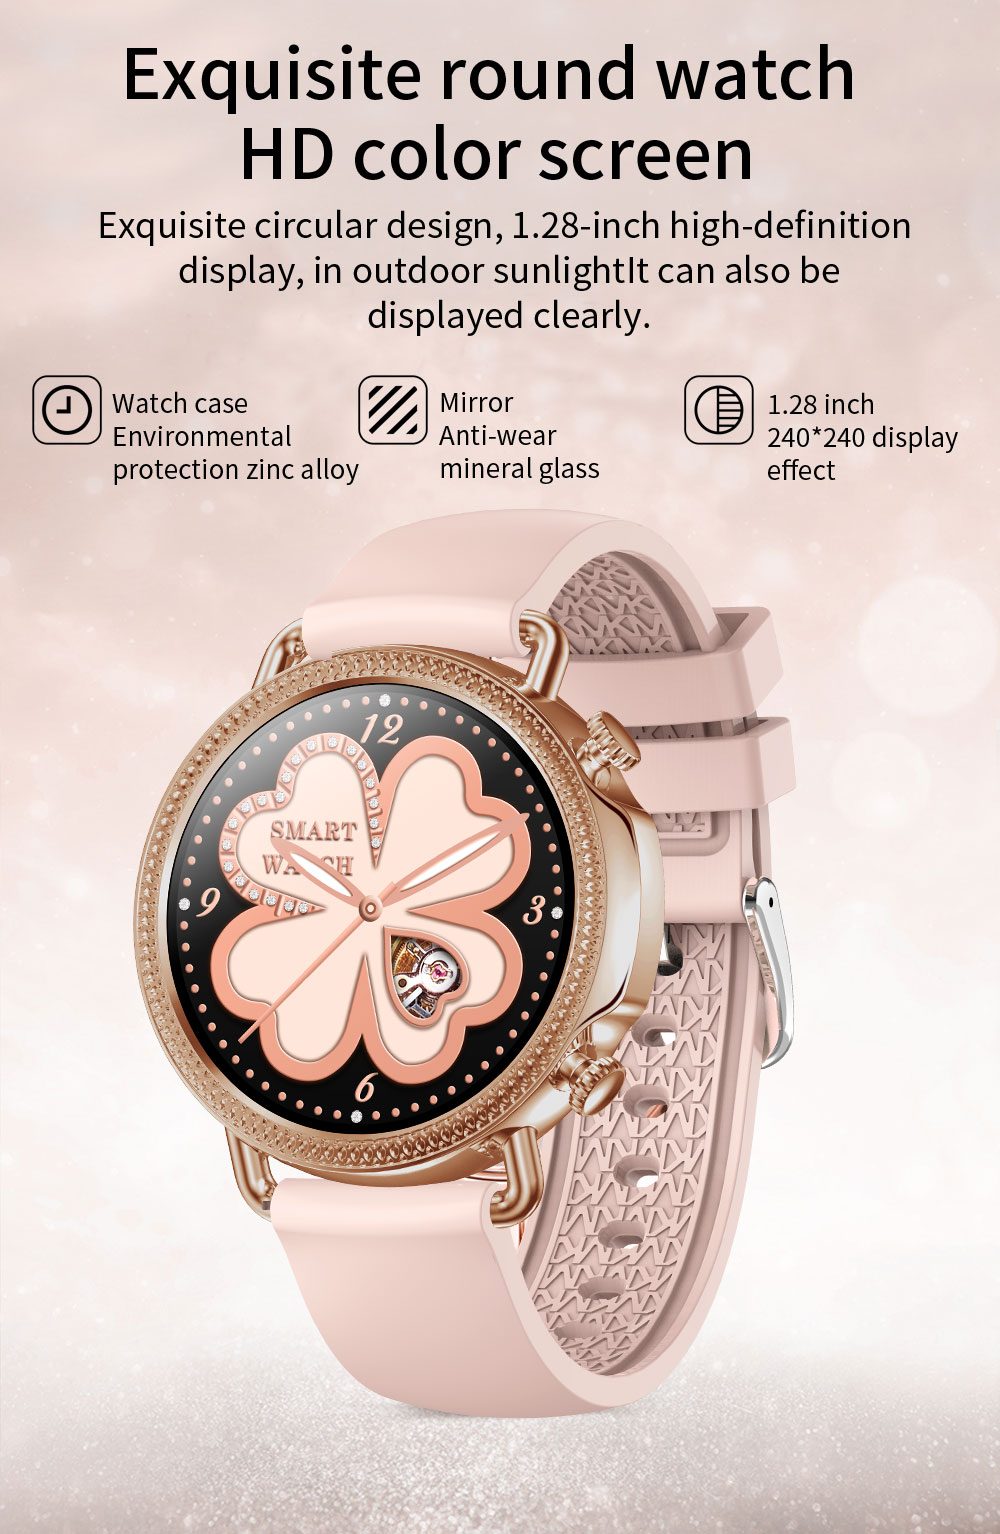 H2cdfaf96d00040d0a0fd48d9265a4390Q 2021 Women Smart Watch 1.28 inch HD Screen IP67 Waterproof Lady's Watches Body Temperature Heart Rate Monitor PK V23